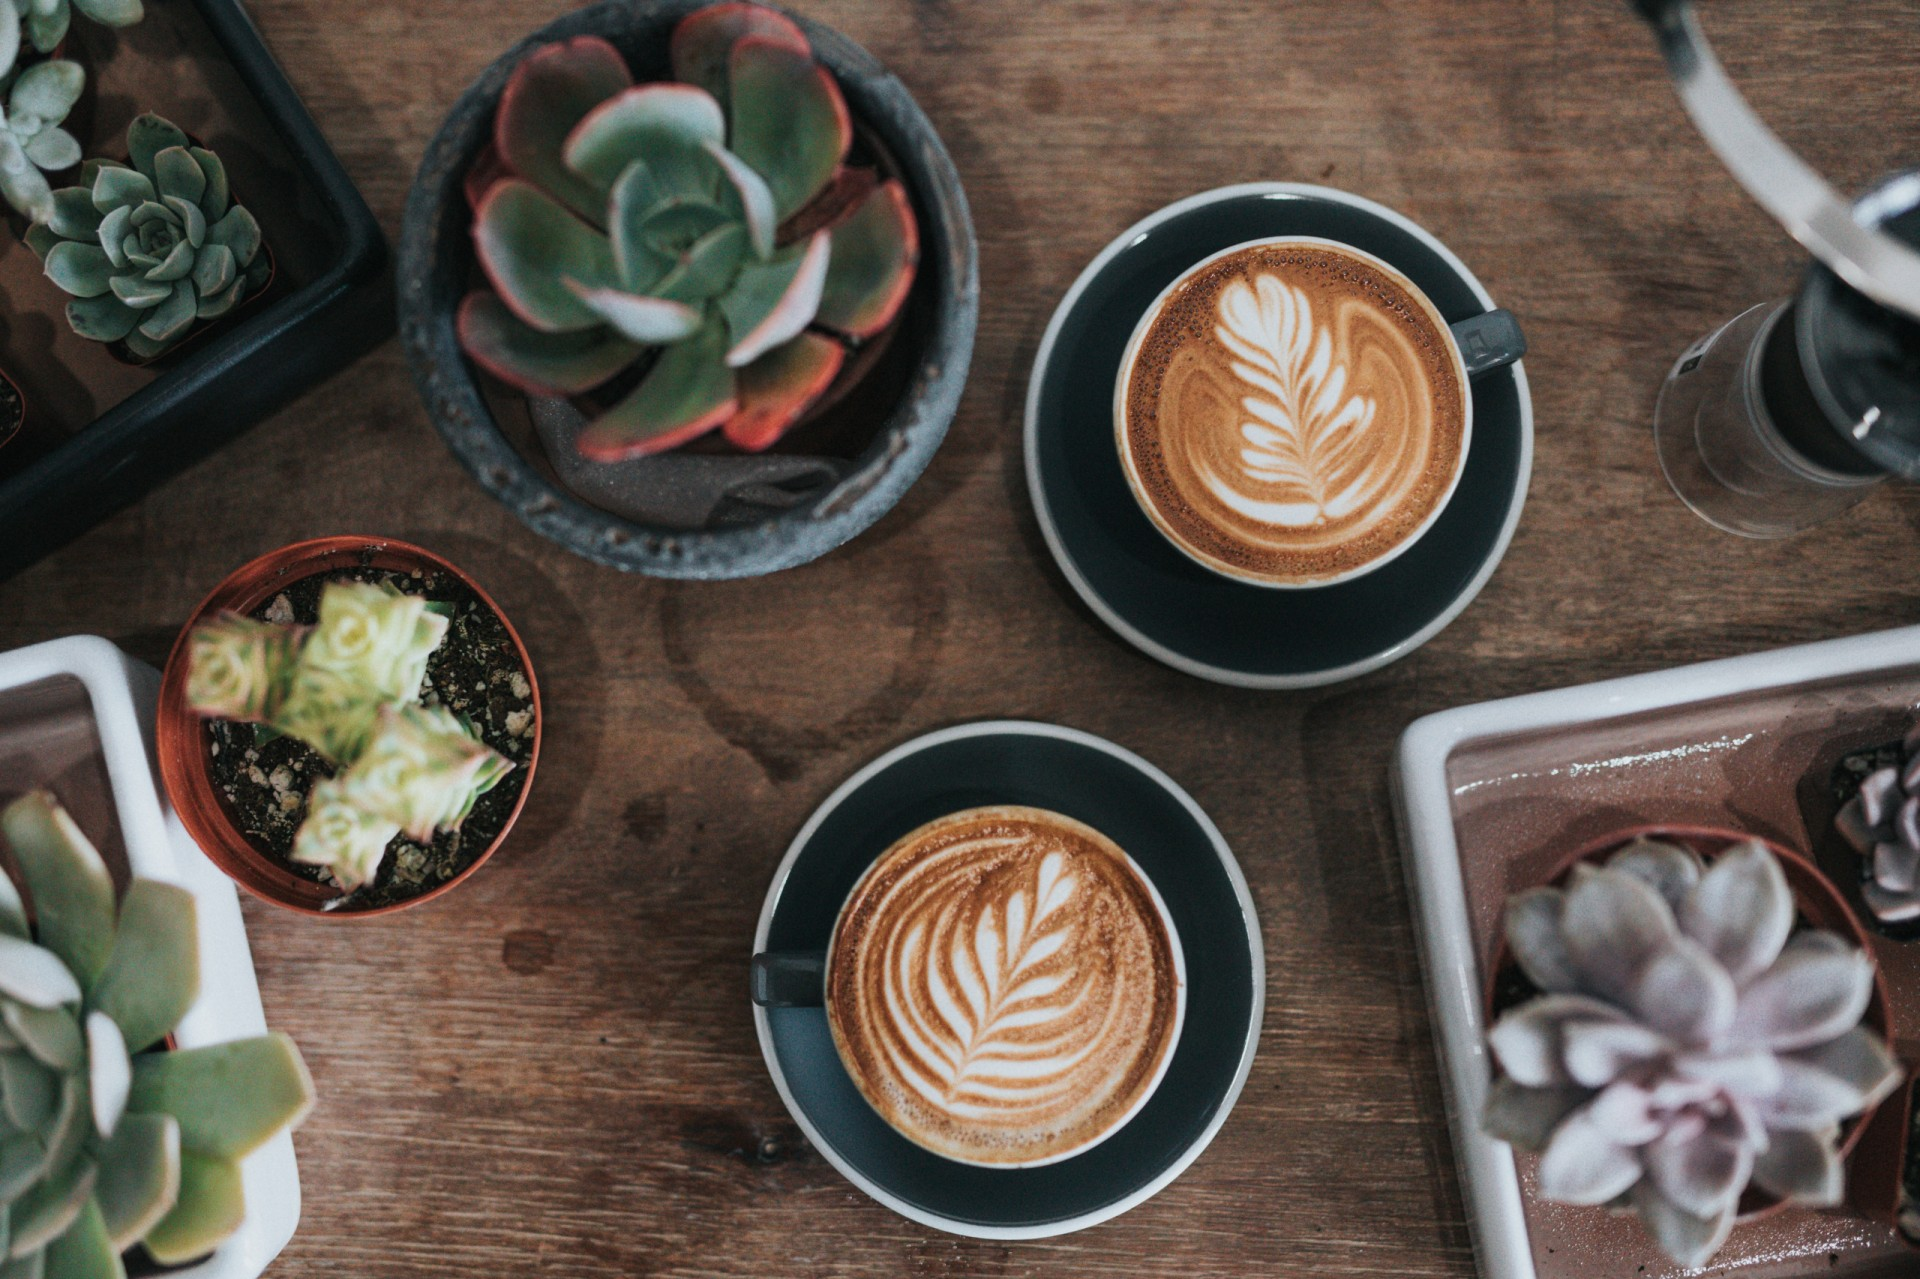 With plant-milks you can have your cappuccino and drink it too. Photo by Nathan Dumlao on Unsplash